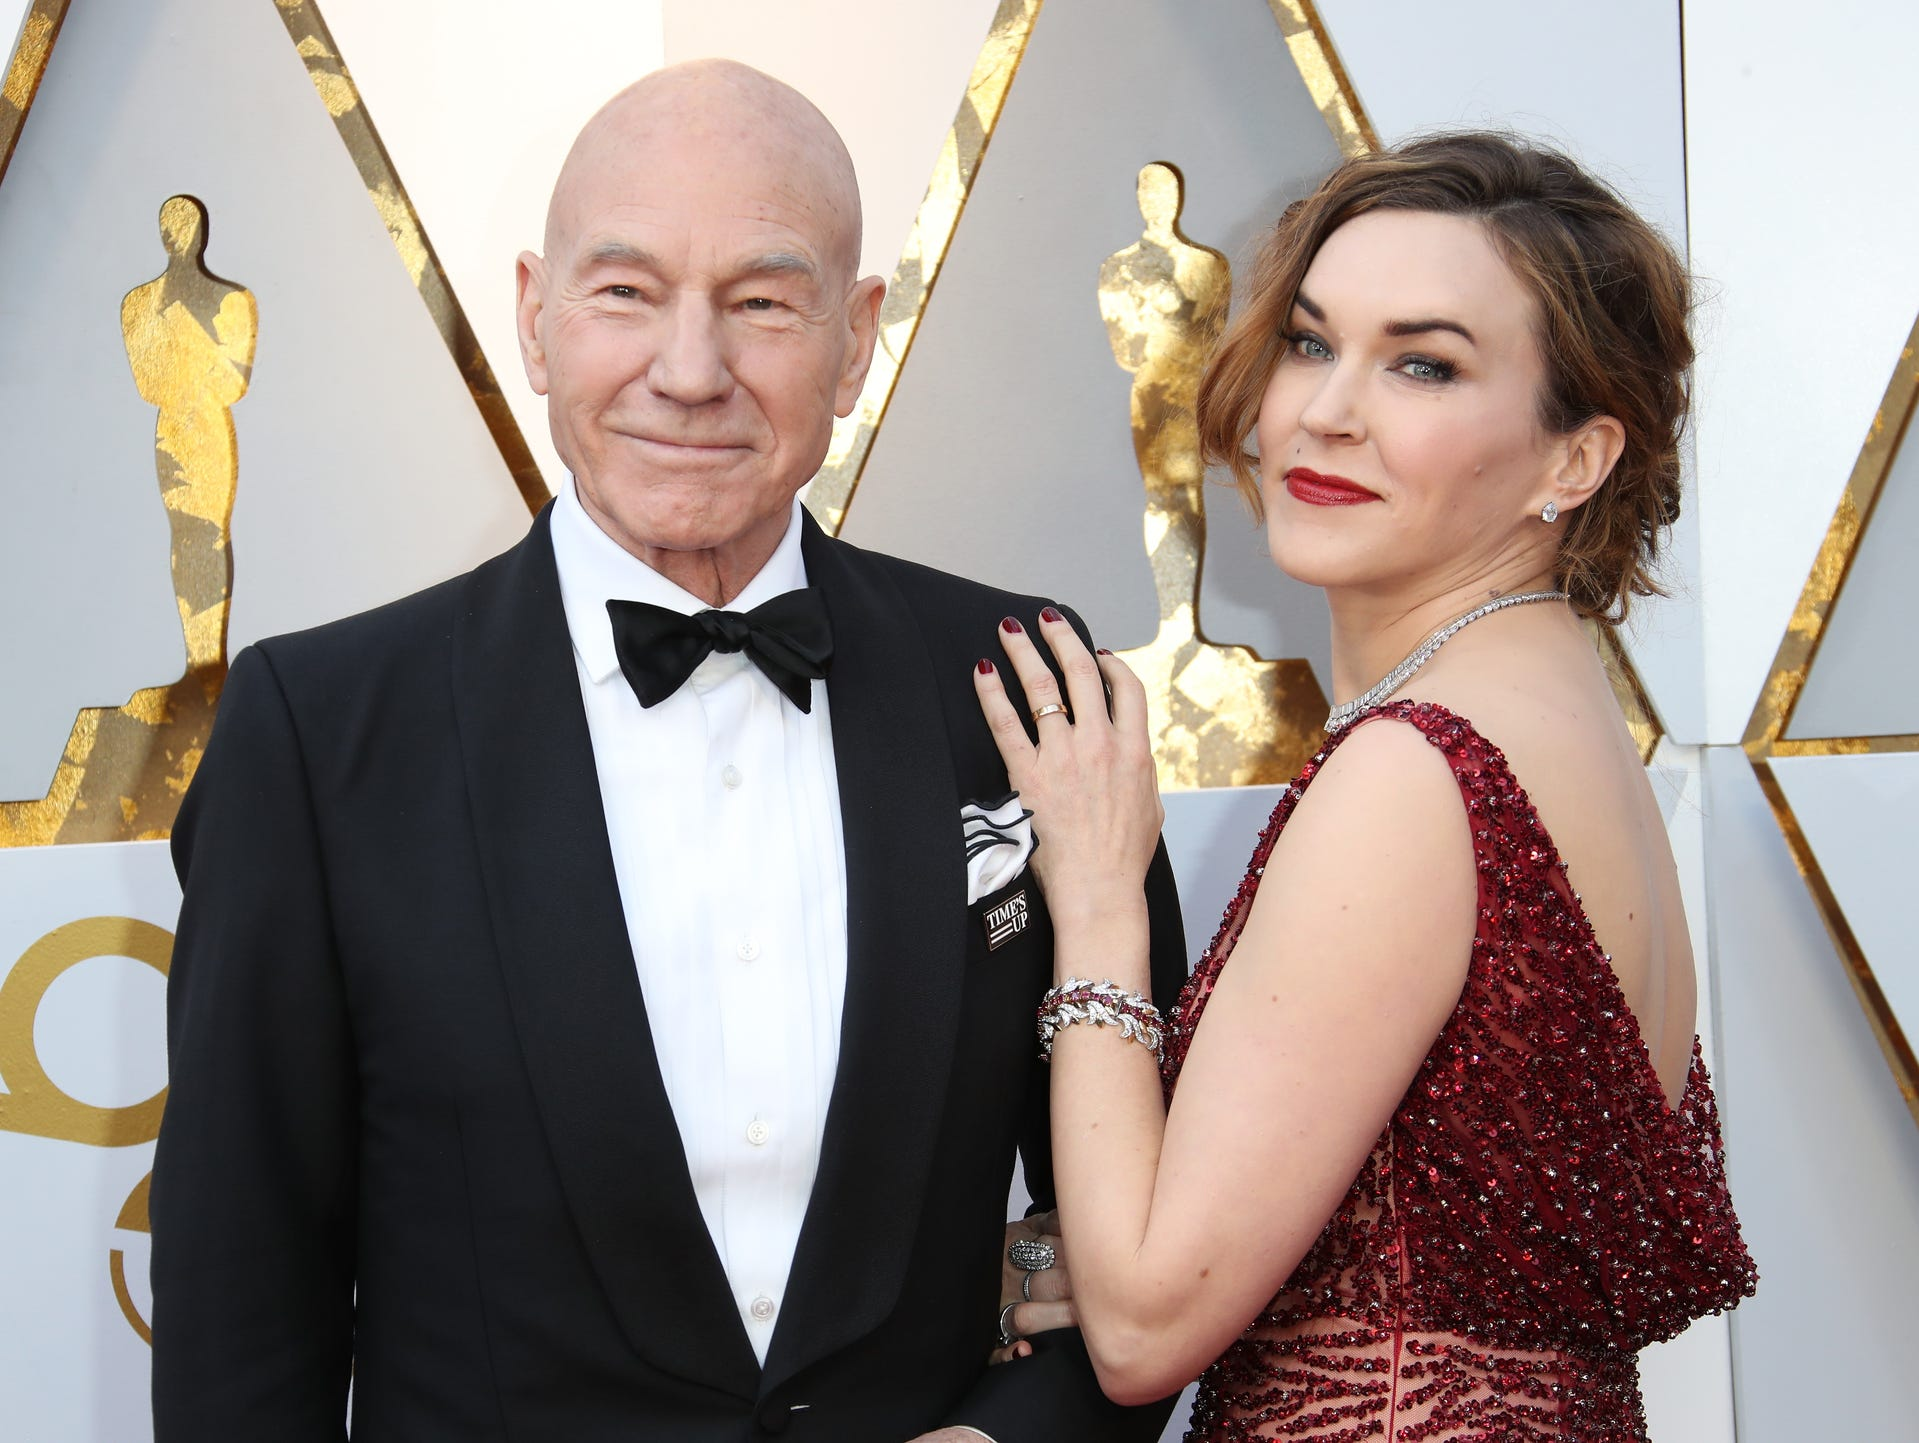 Patrick Stewart, left and Sunny Ozell